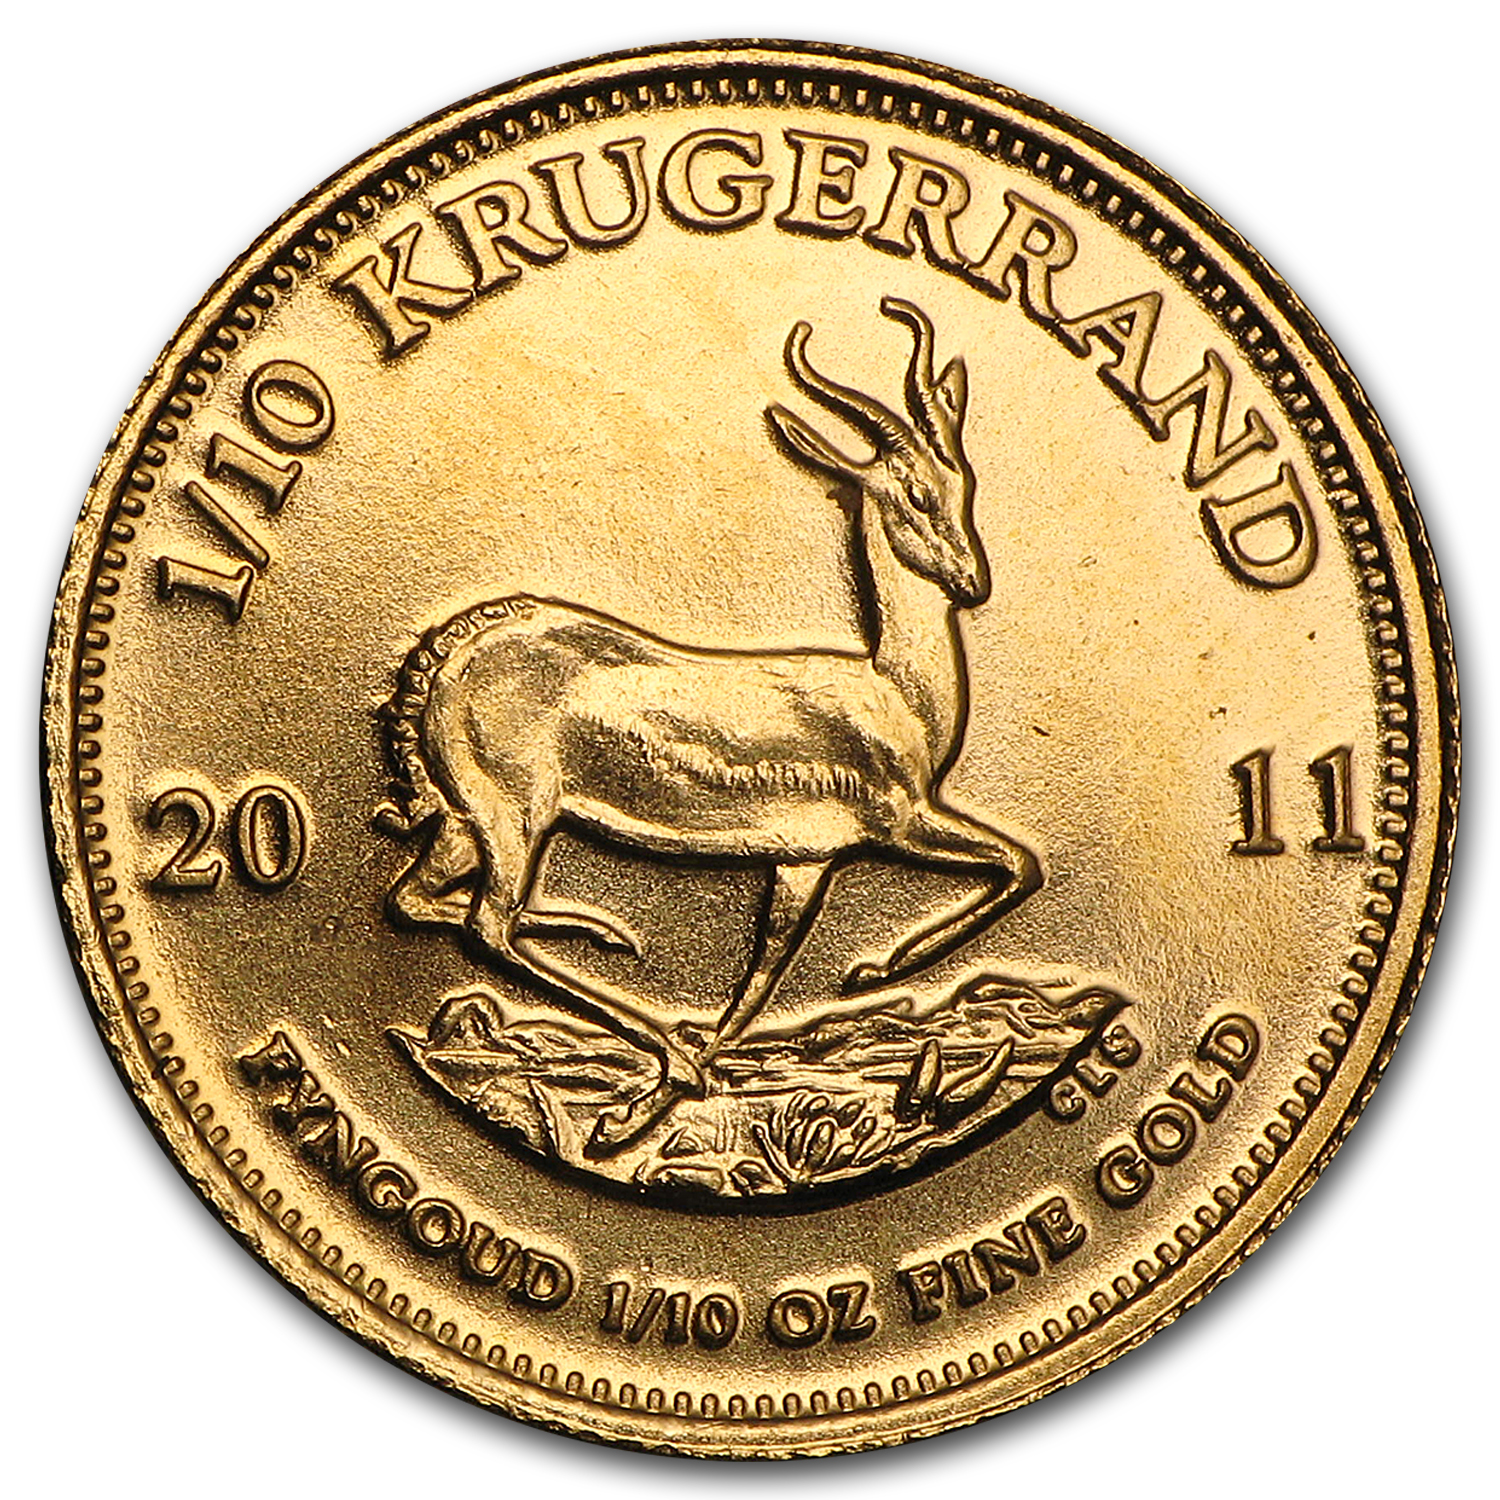 2011 South Africa 1/10 oz Gold Krugerrand